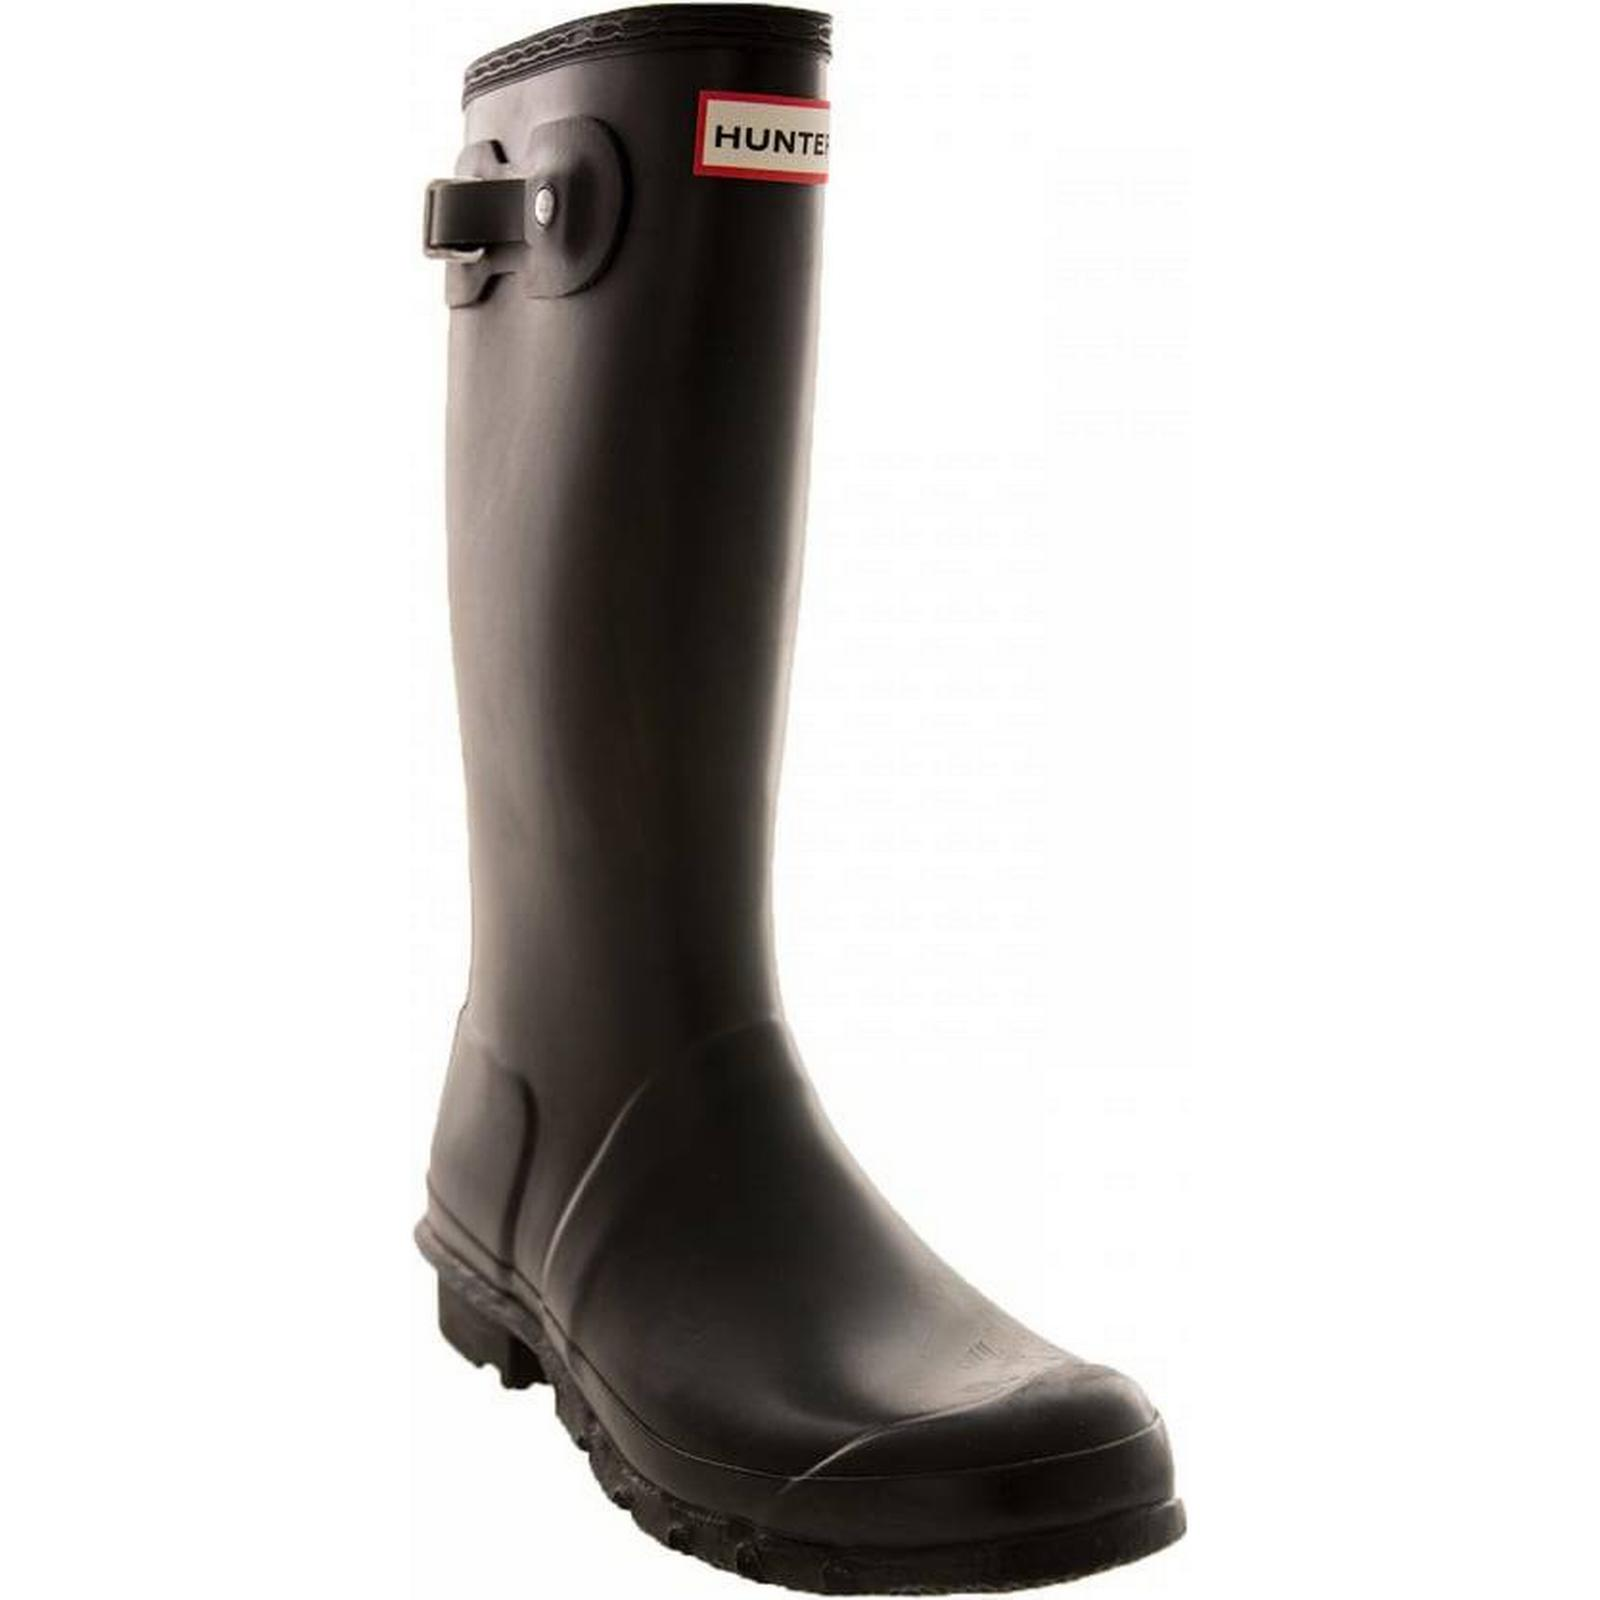 Hunter Infants Size: Original Wellington Boots (Black) Size: Infants 10, Colour: BLA eff083